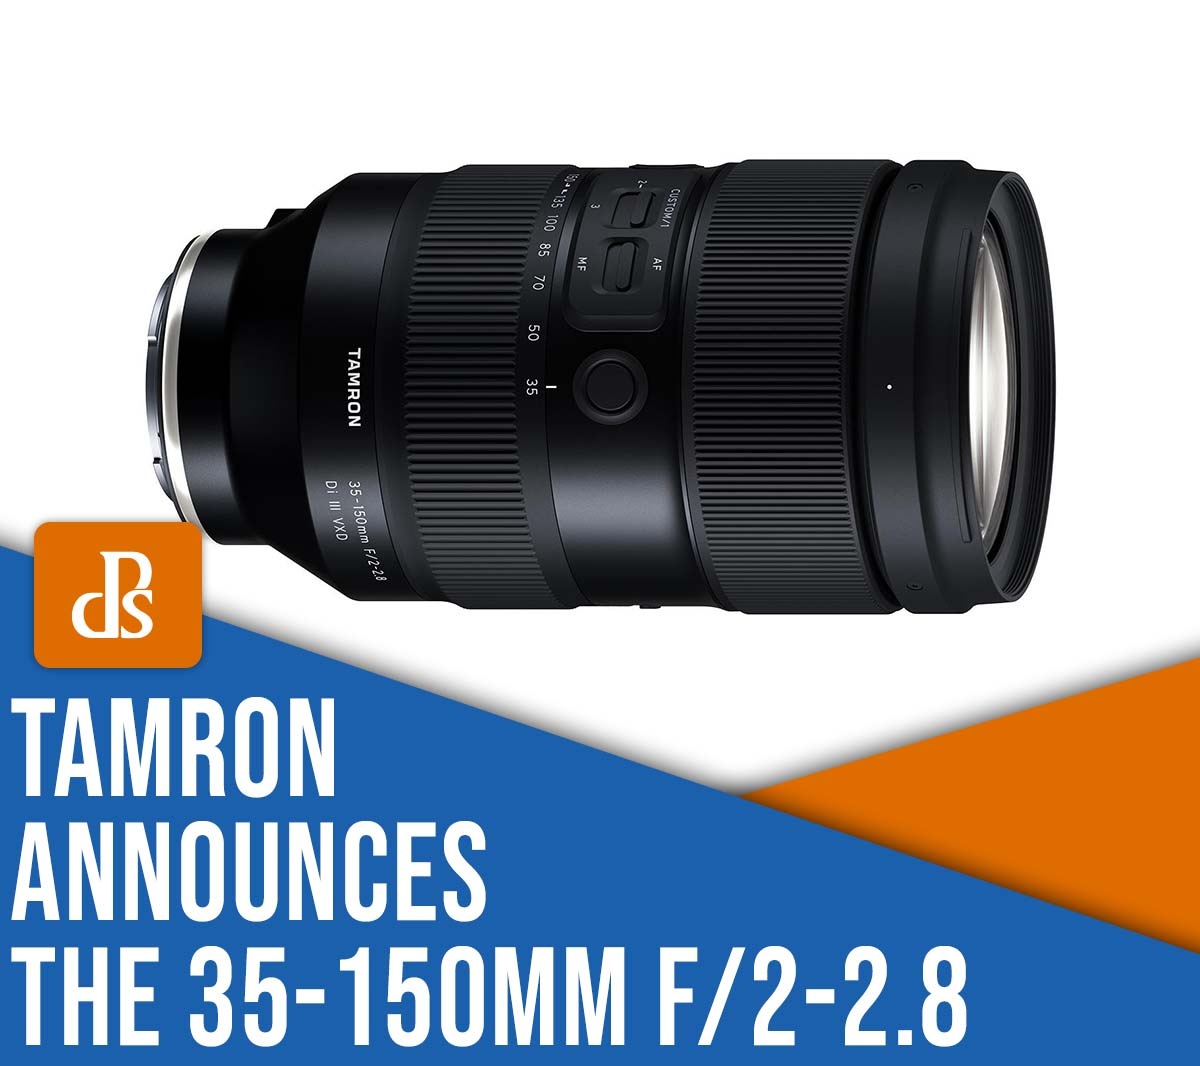 Tamron announces the 35-150mm f/2-2.8 zoom lens